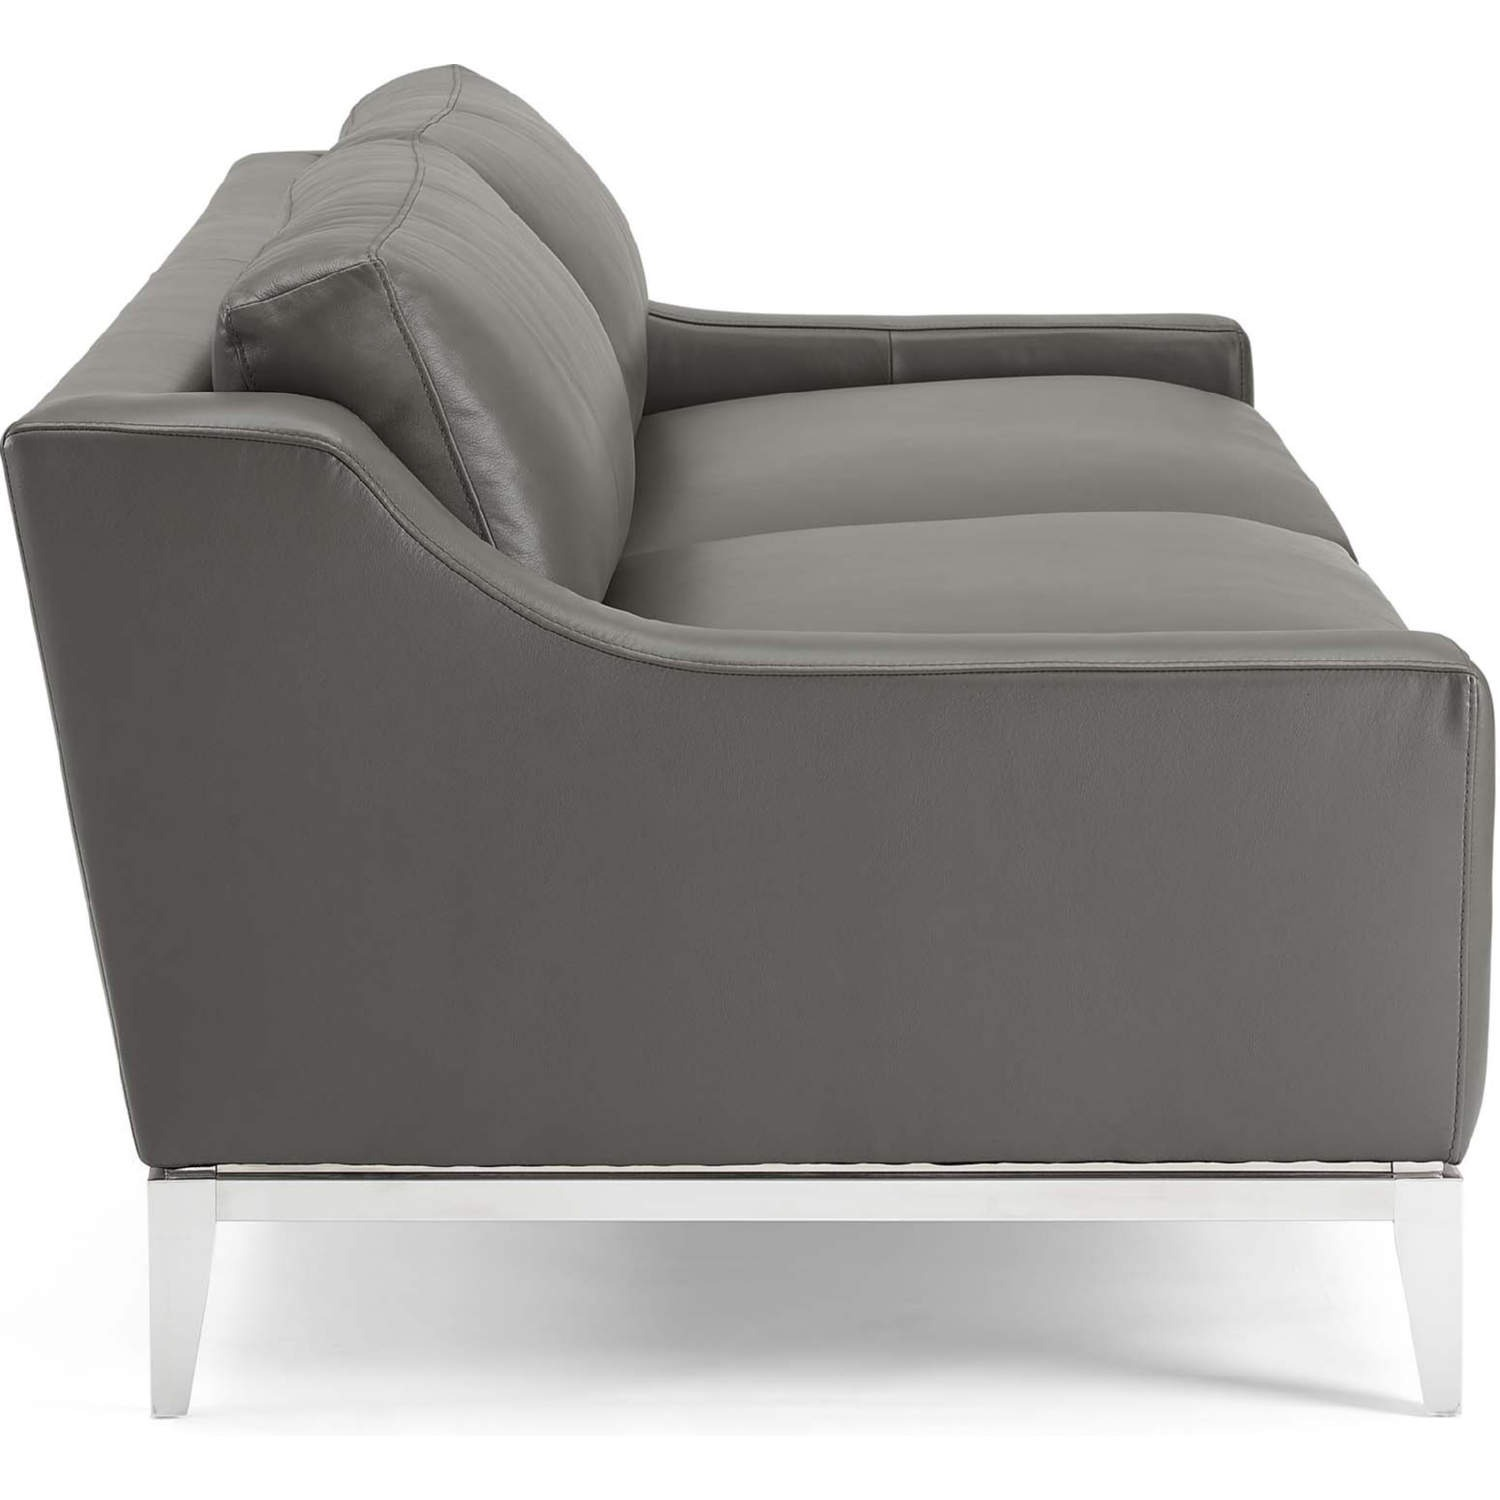 Sofa In Gray Leather Upholstery W/ Steel Base - image-1